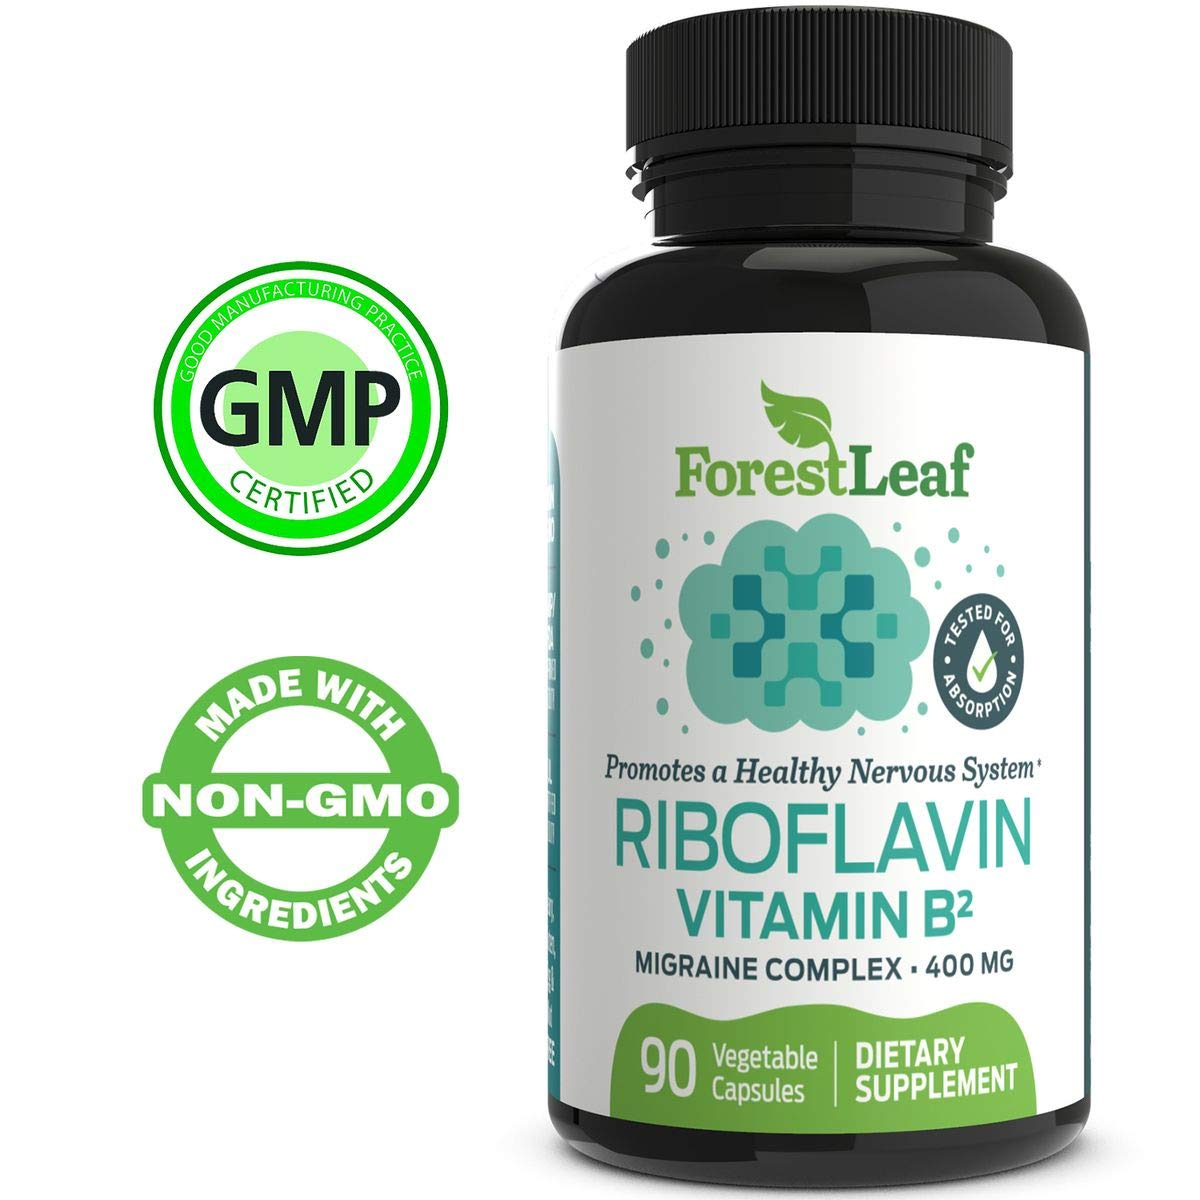 Vitamin B2 Riboflavin, 400mg - 90 Capsules - Promotes Healthier Blood, Nervous System and Helps Boost Energy and Metabolism - Non-GMO, Gluten Free Daily Dietary Supplement - by ForestLeaf